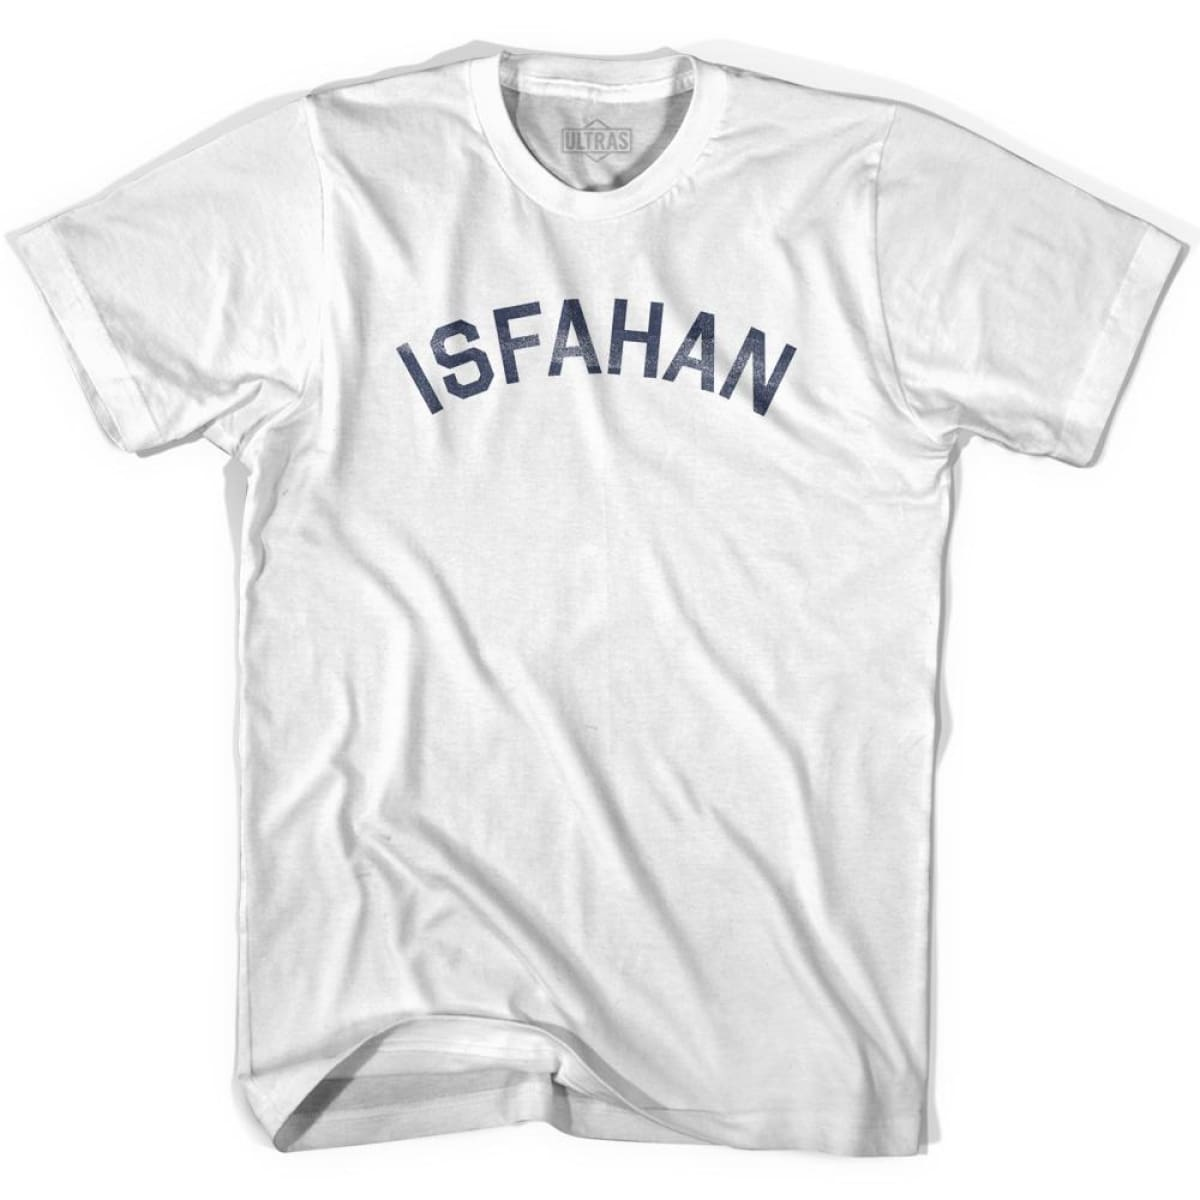 Isfahan Vintage City Womens Cotton T-shirt - White / Womens Small - Asian Vintage City